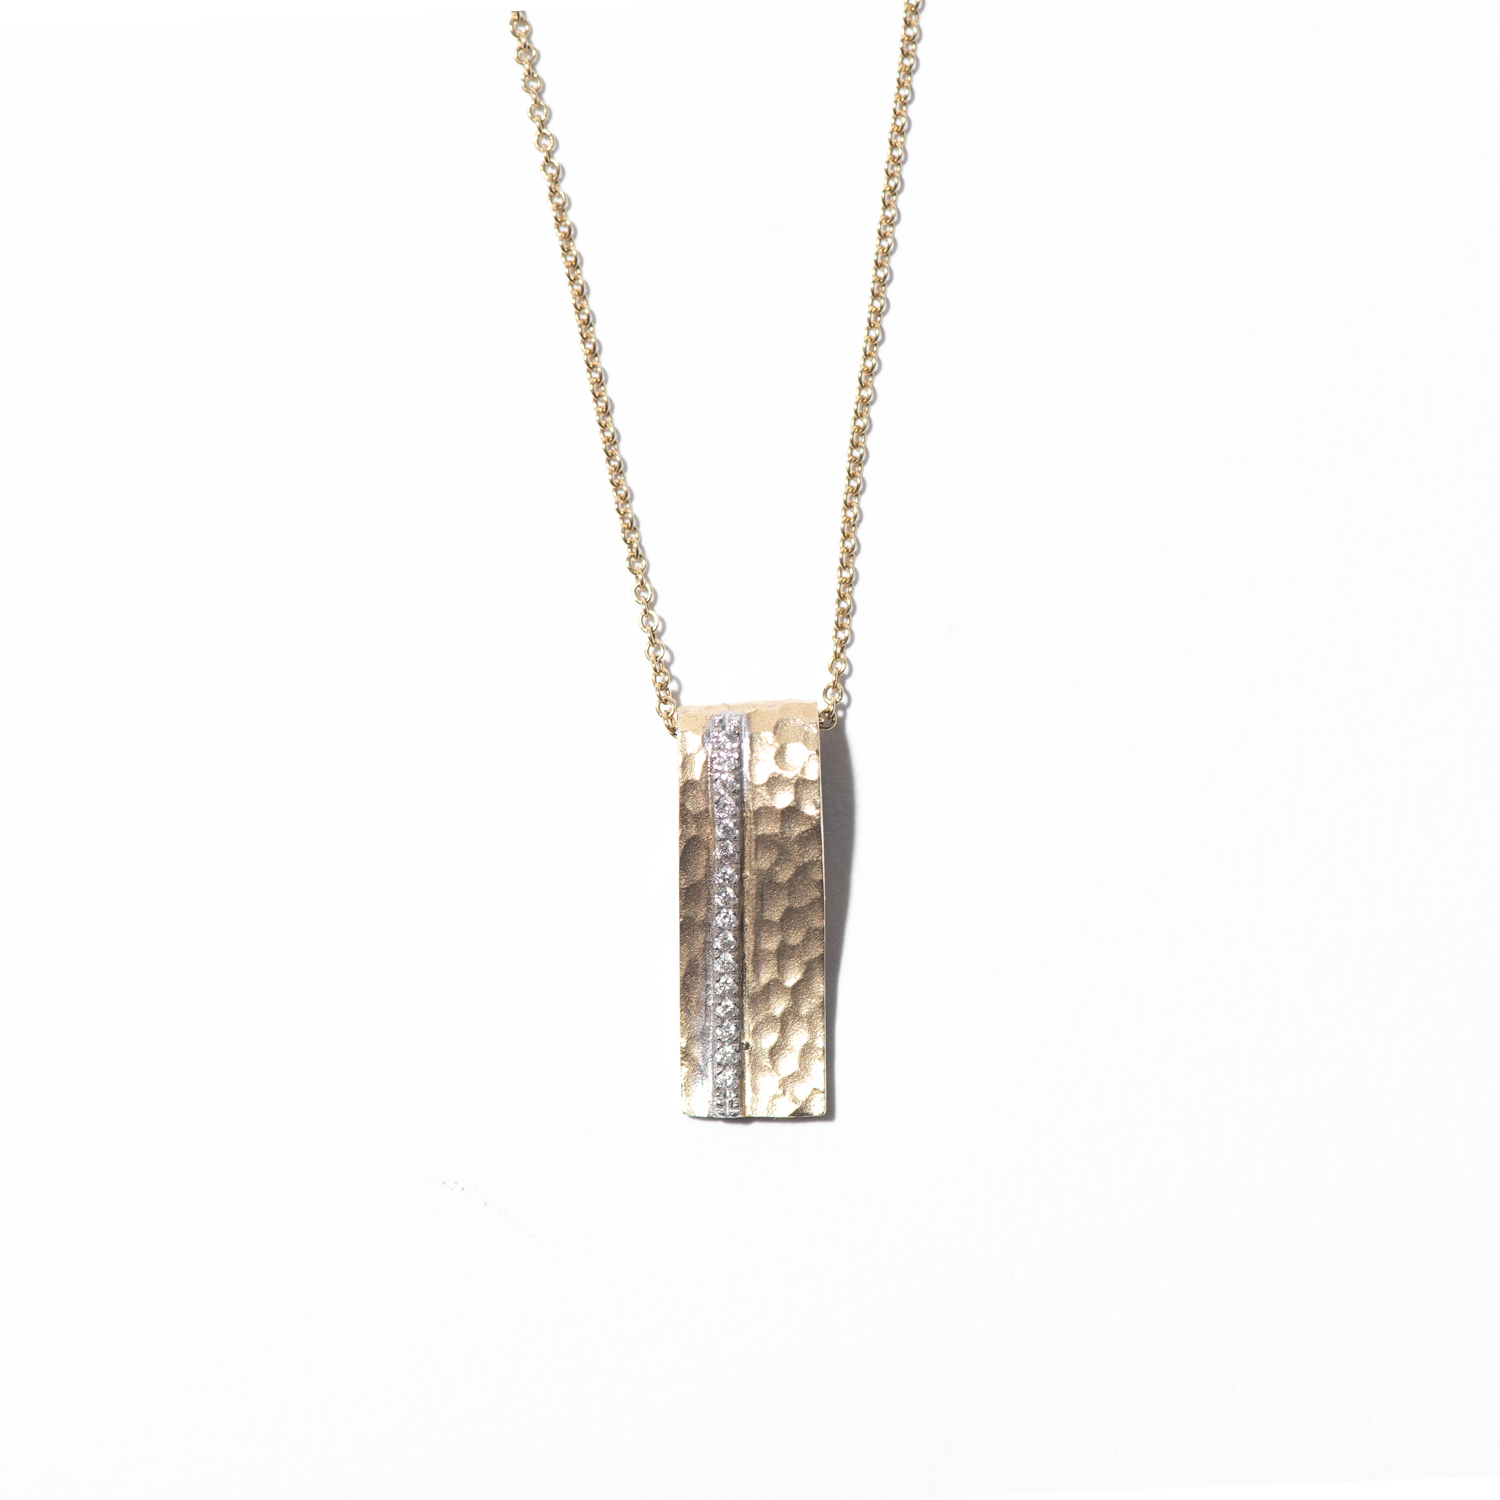 Design Twenty Five. - Hammered Gold with Diamond Bar Necklace